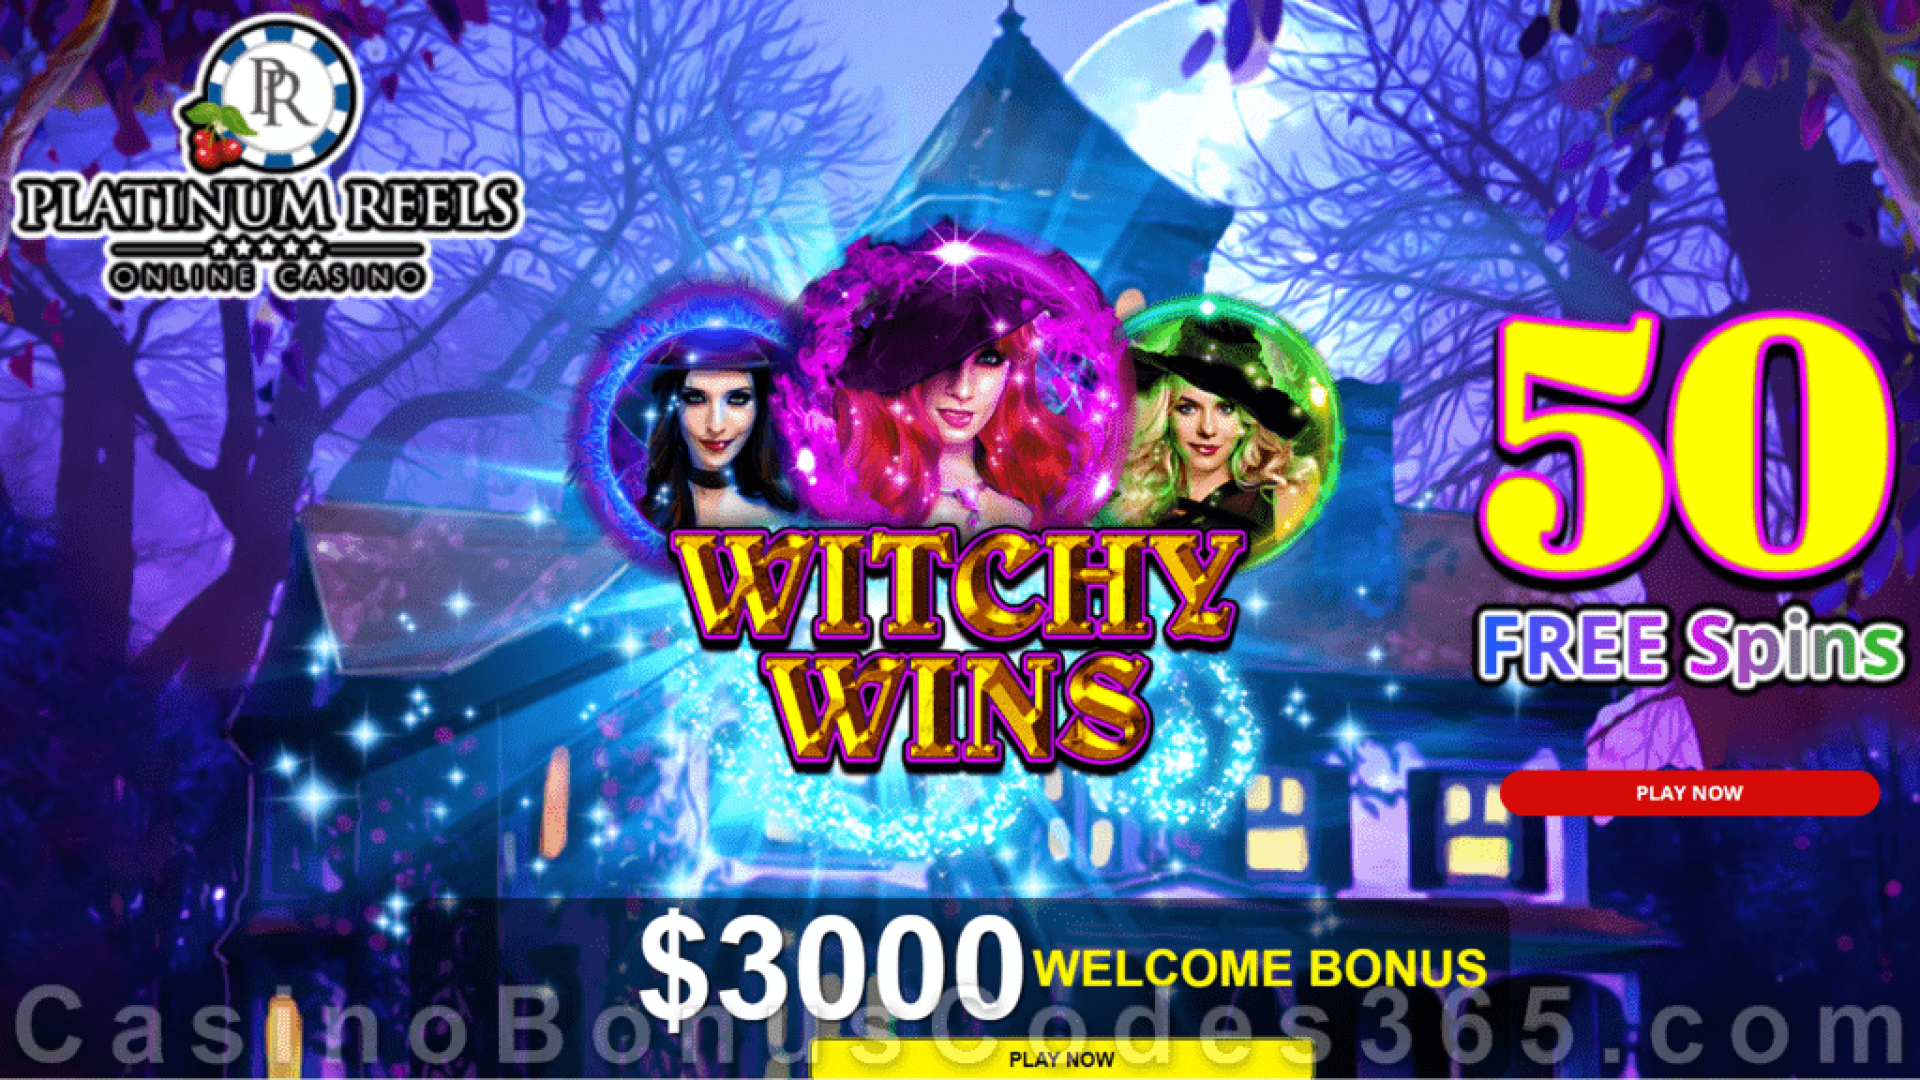 Platinum Reels 50 FREE Spins on Witchy Wins New RTG Game Special Deal